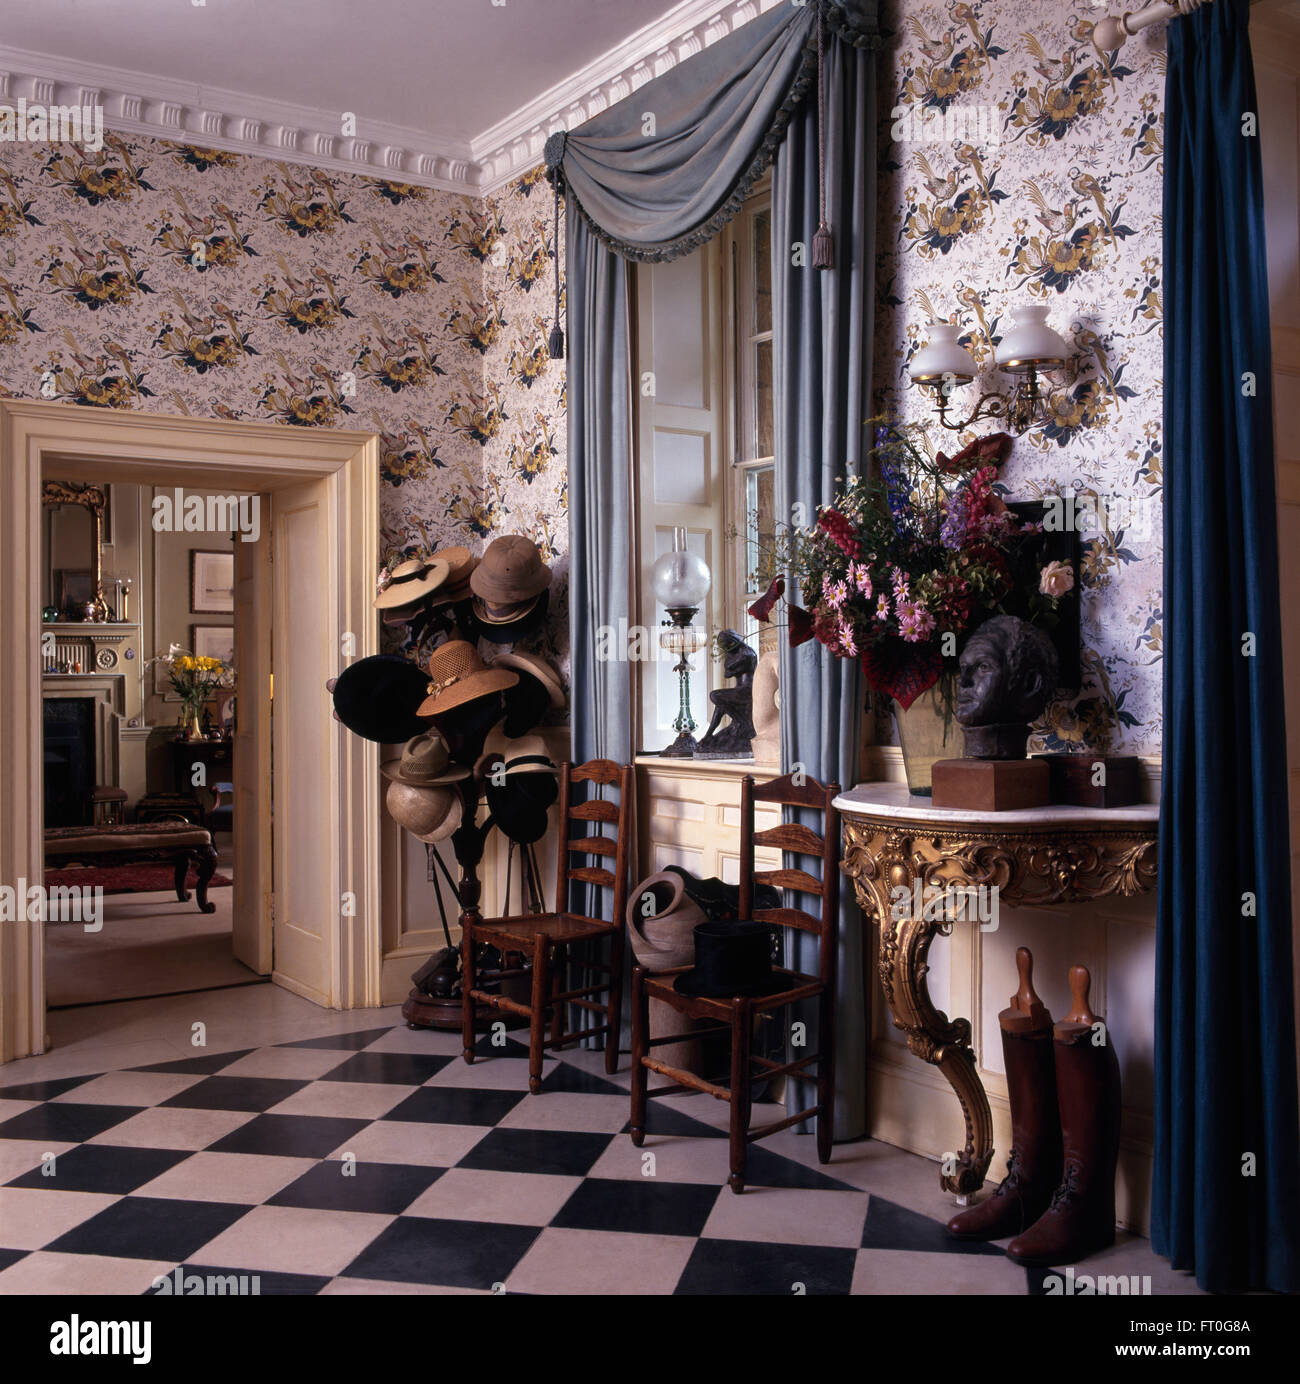 Blue Swagged Drapes And Patterned Wallpaper In Georgian Hall With